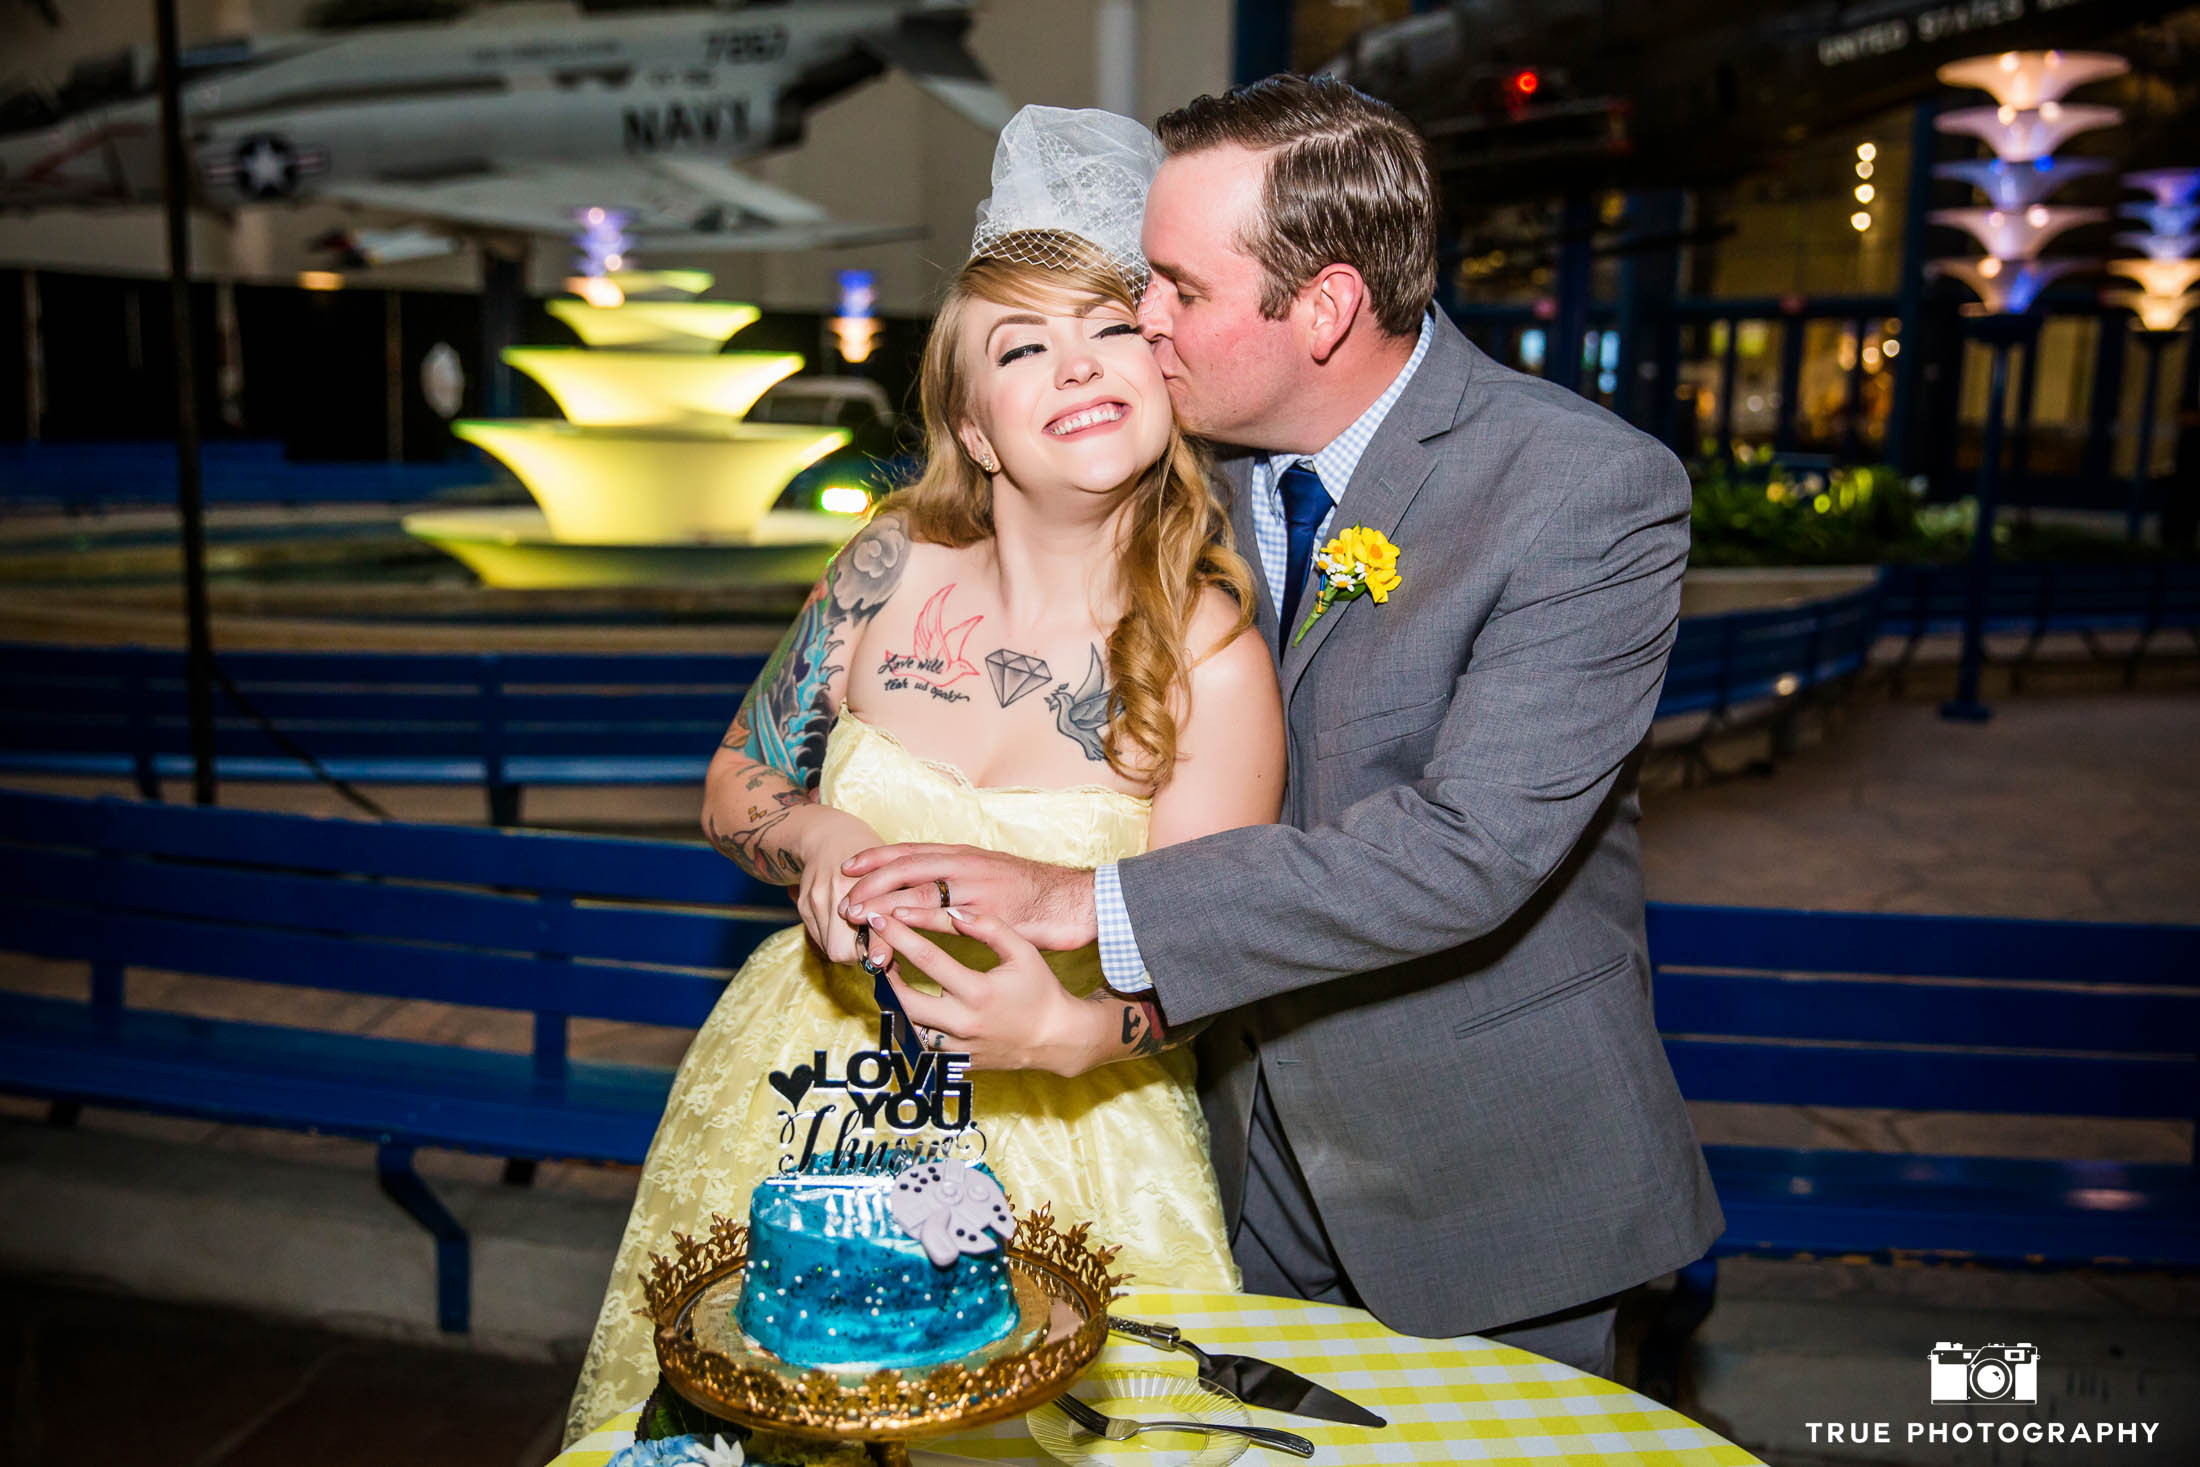 Groom kisses Bride as they cut wedding cake during reception